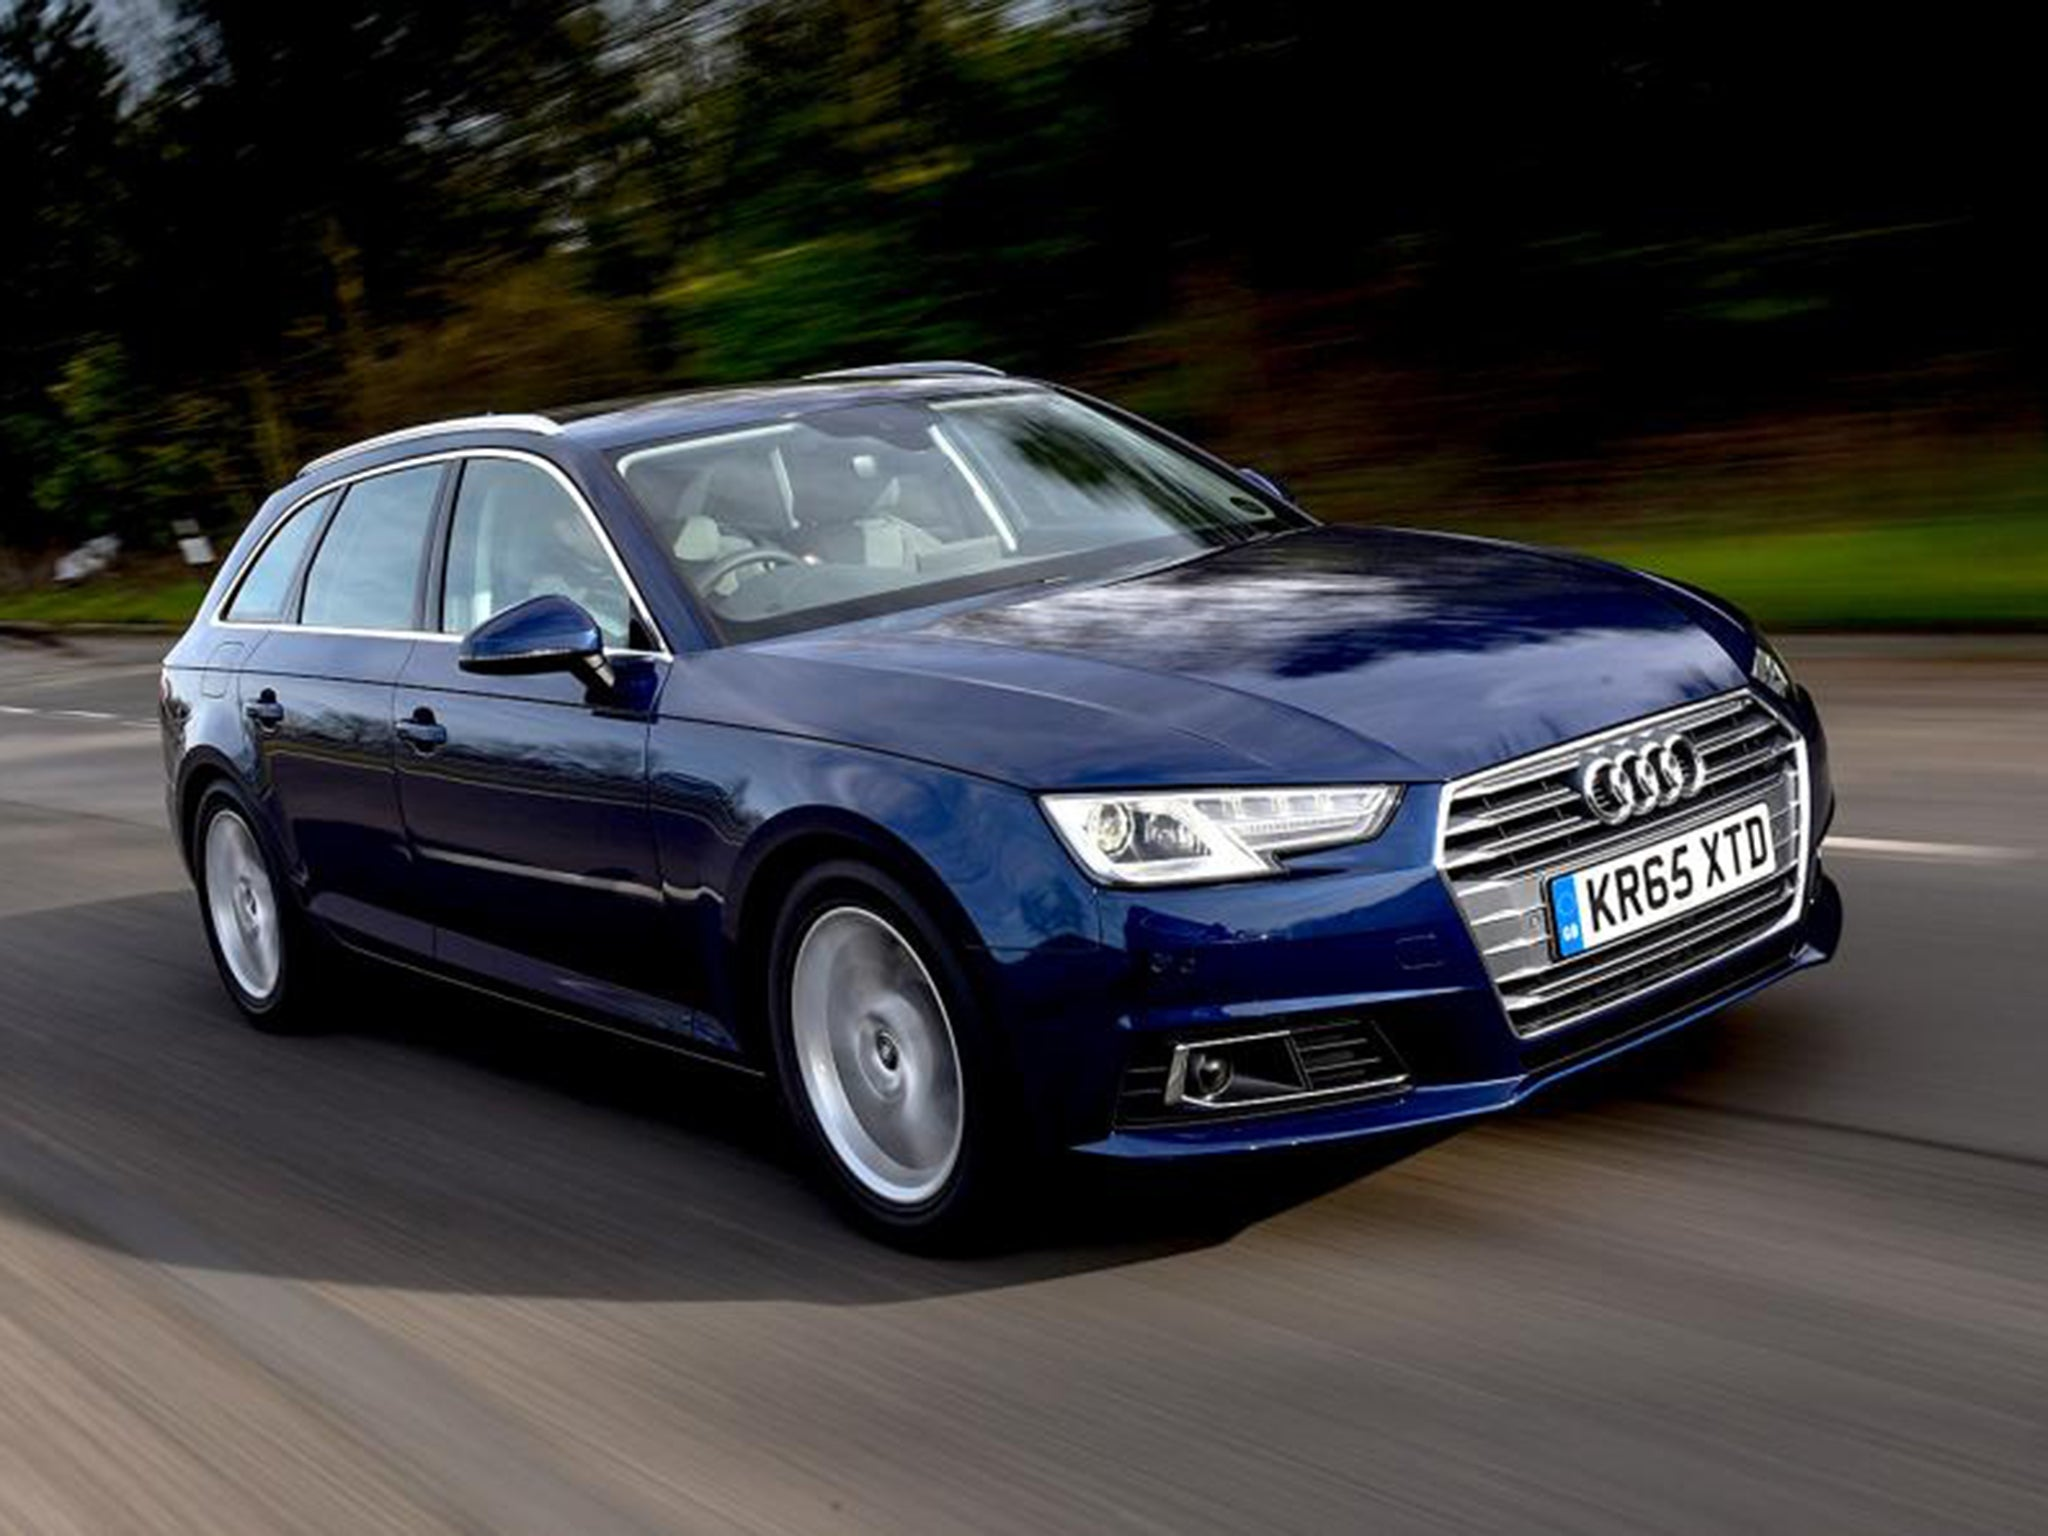 audi a4 avant 2 0 tdi 150 ultra sport car review. Black Bedroom Furniture Sets. Home Design Ideas